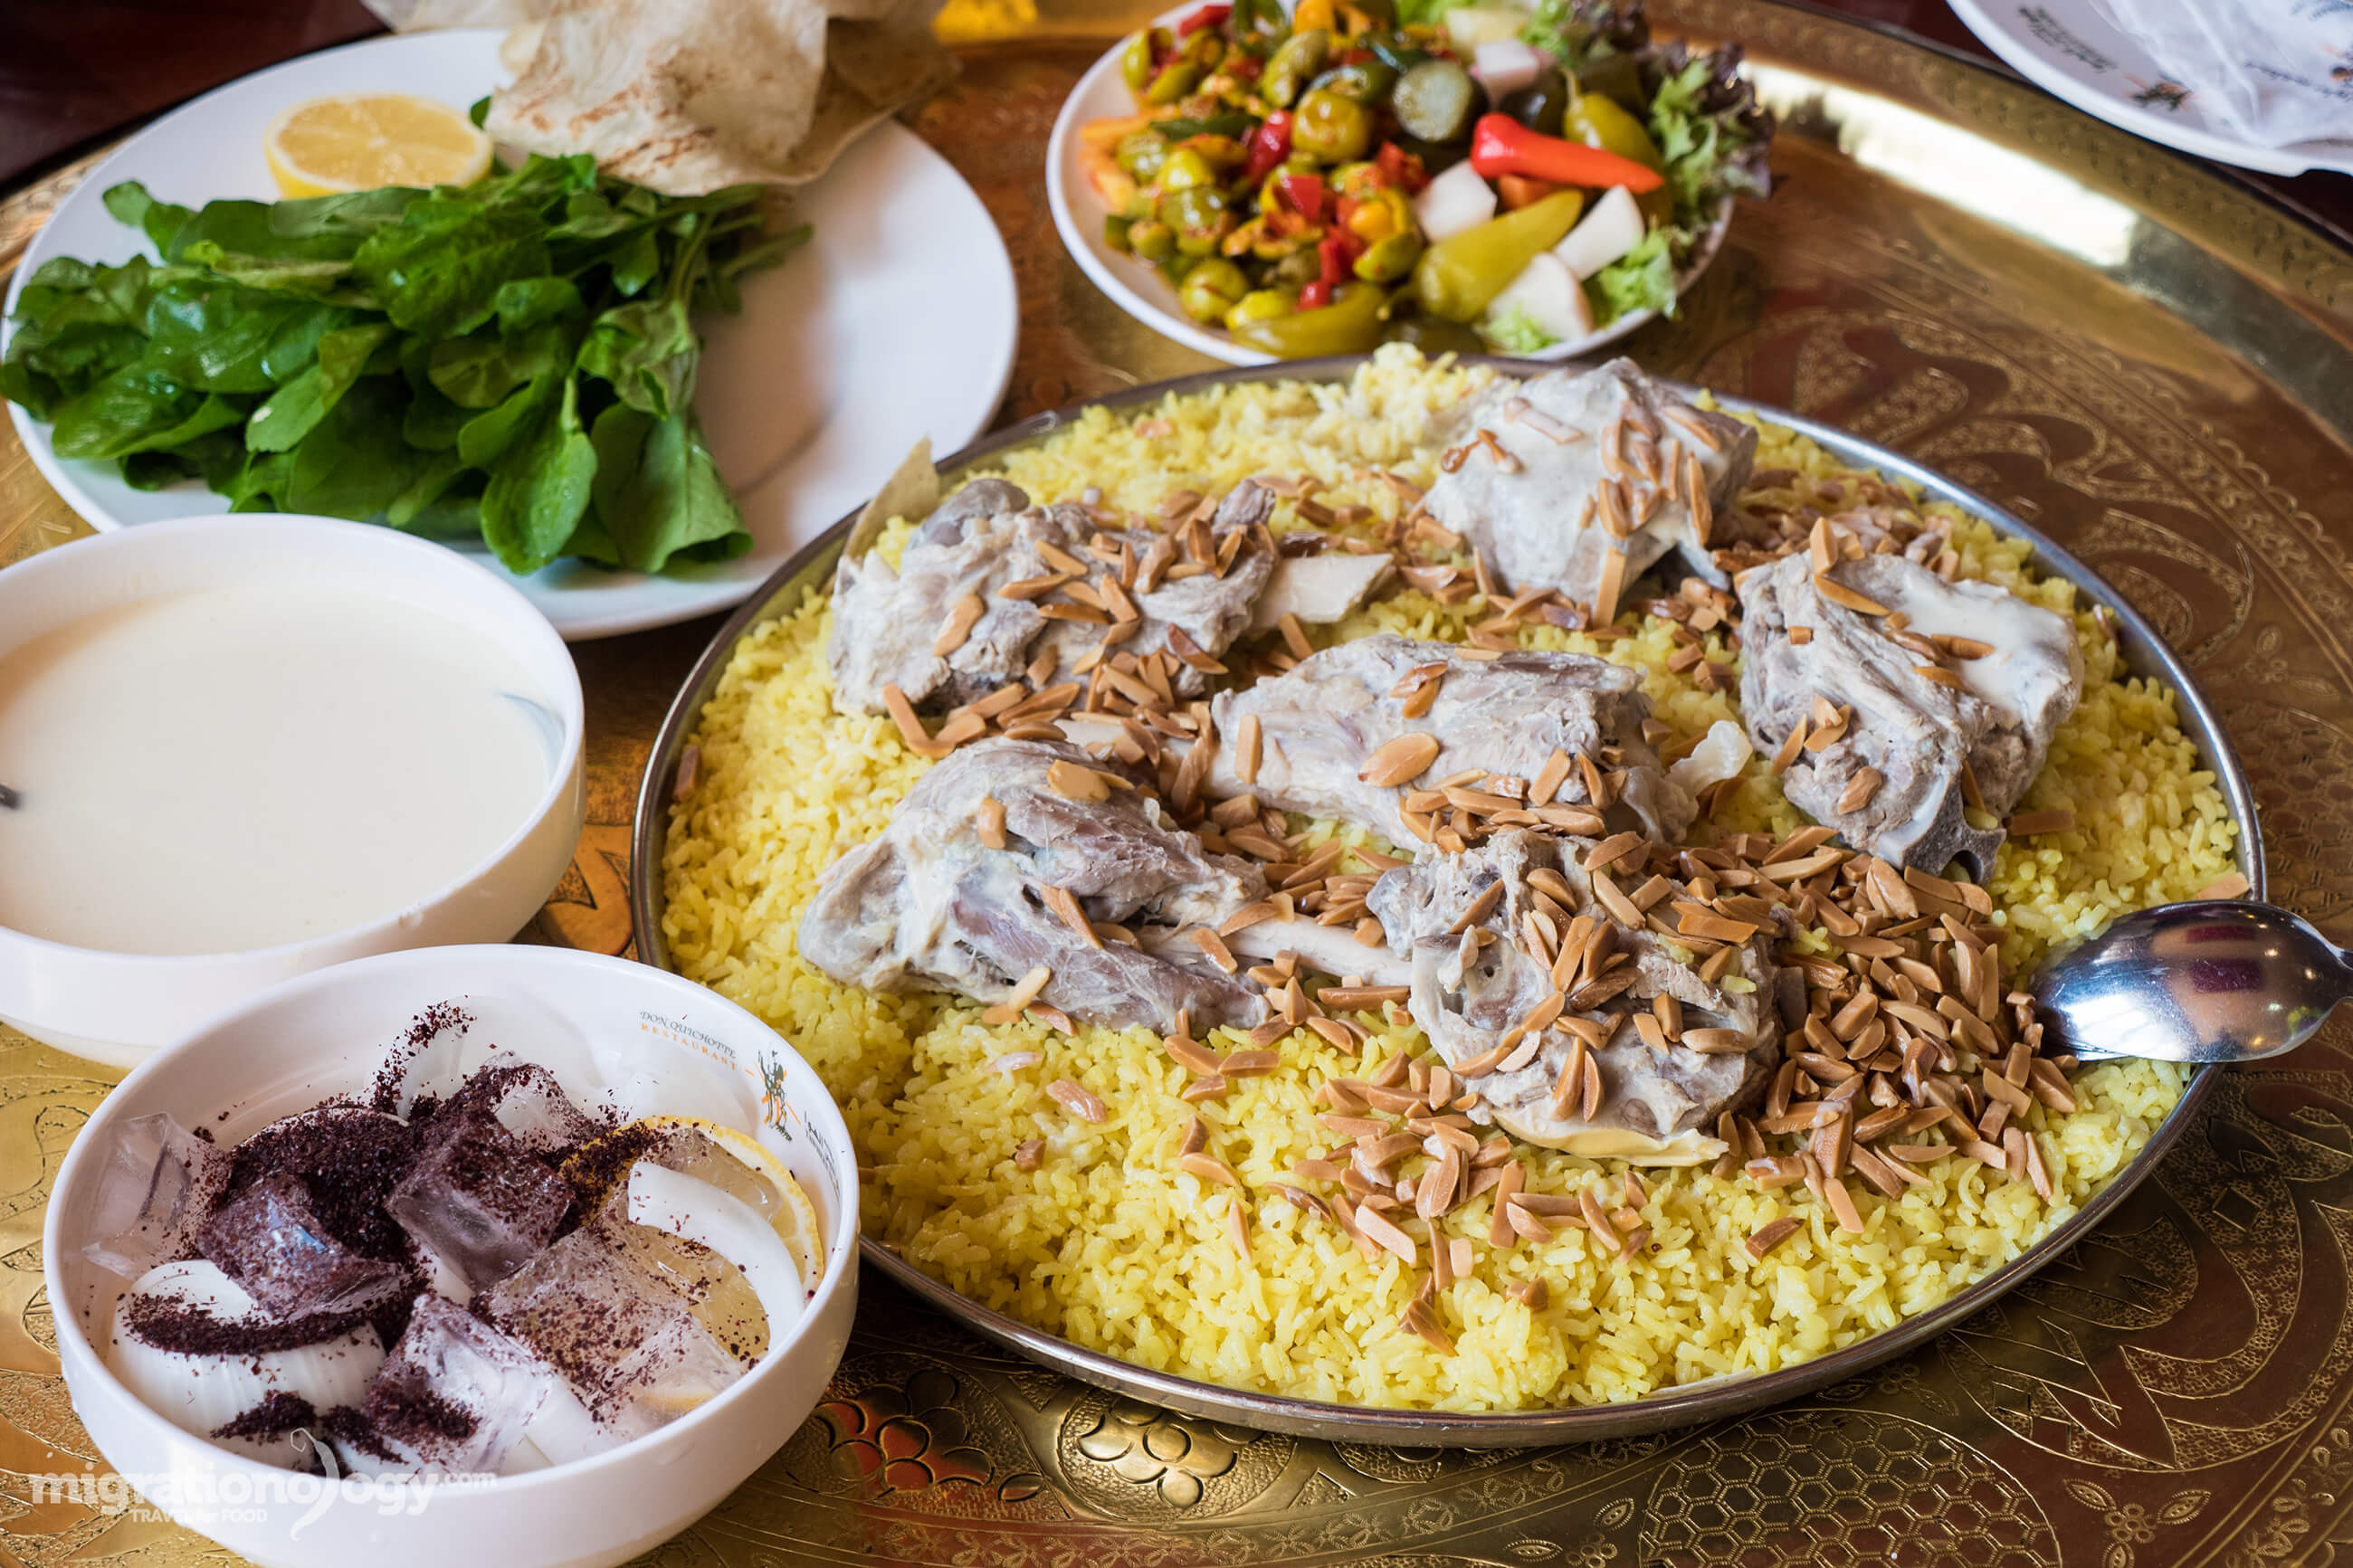 ian food 25 of the best dishes you should eat mansaf the one dish you have to eat in